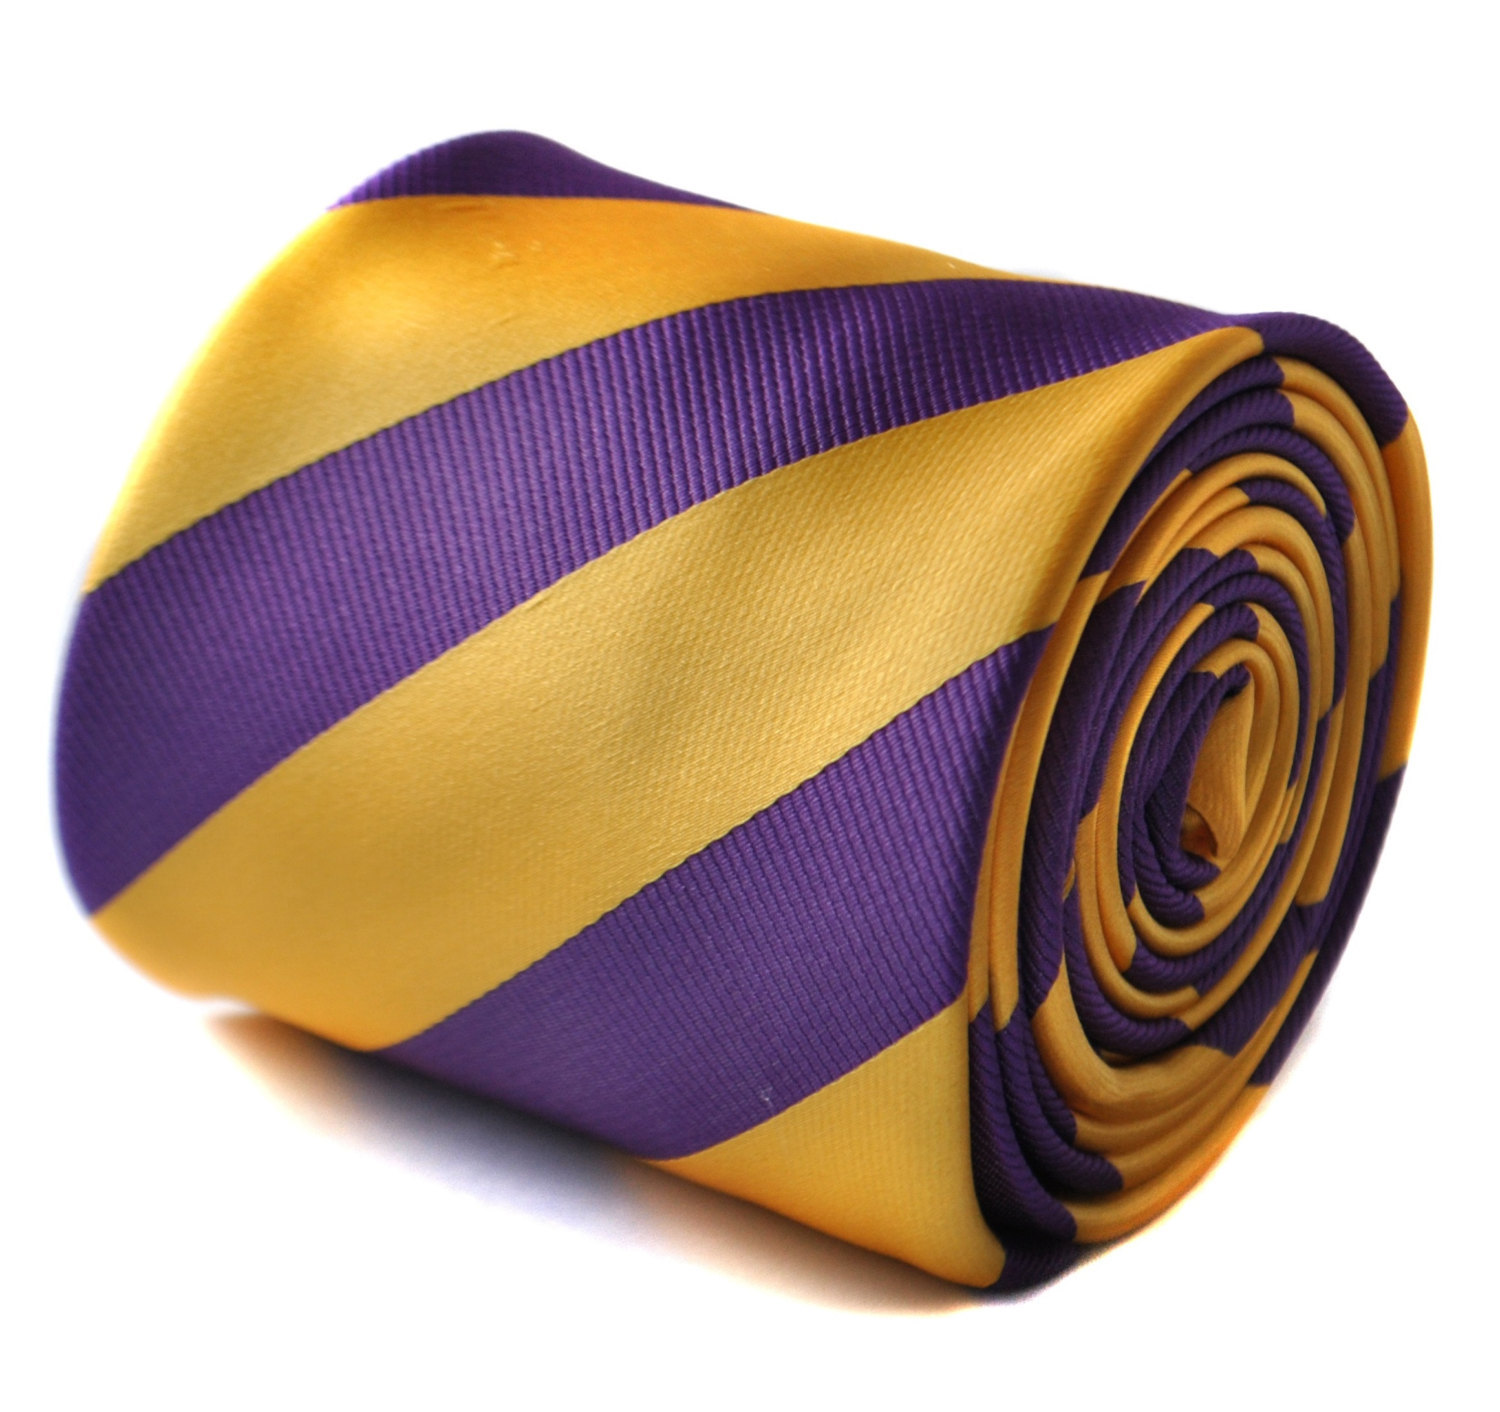 cadbury purple and yellow barber striped tie with signature floral design to the